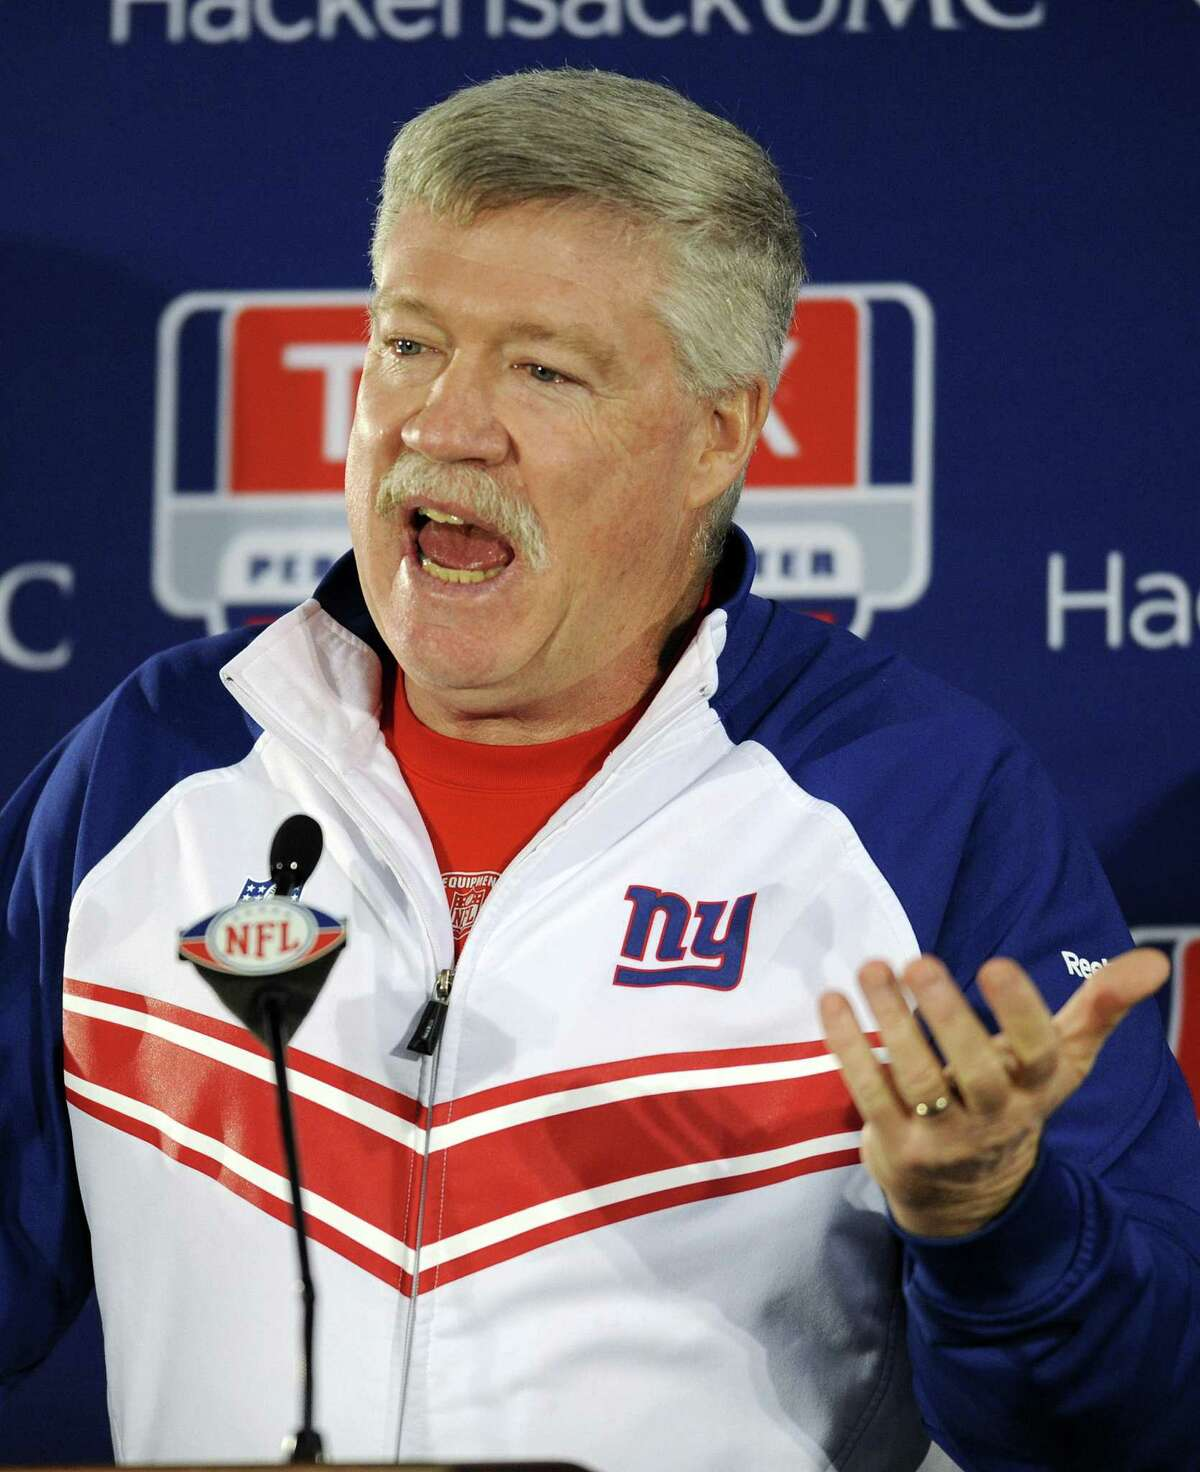 Then-New York Giants offensive coordinator Kevin Gilbride speaks to the media after NFL football practice Thursday, Jan. 19, 2012, in East Rutherford, N.J. Gilbride has been hired as the head coach and general manager of the New York team of the revived XFL, whose inaugural season will be in 2020.